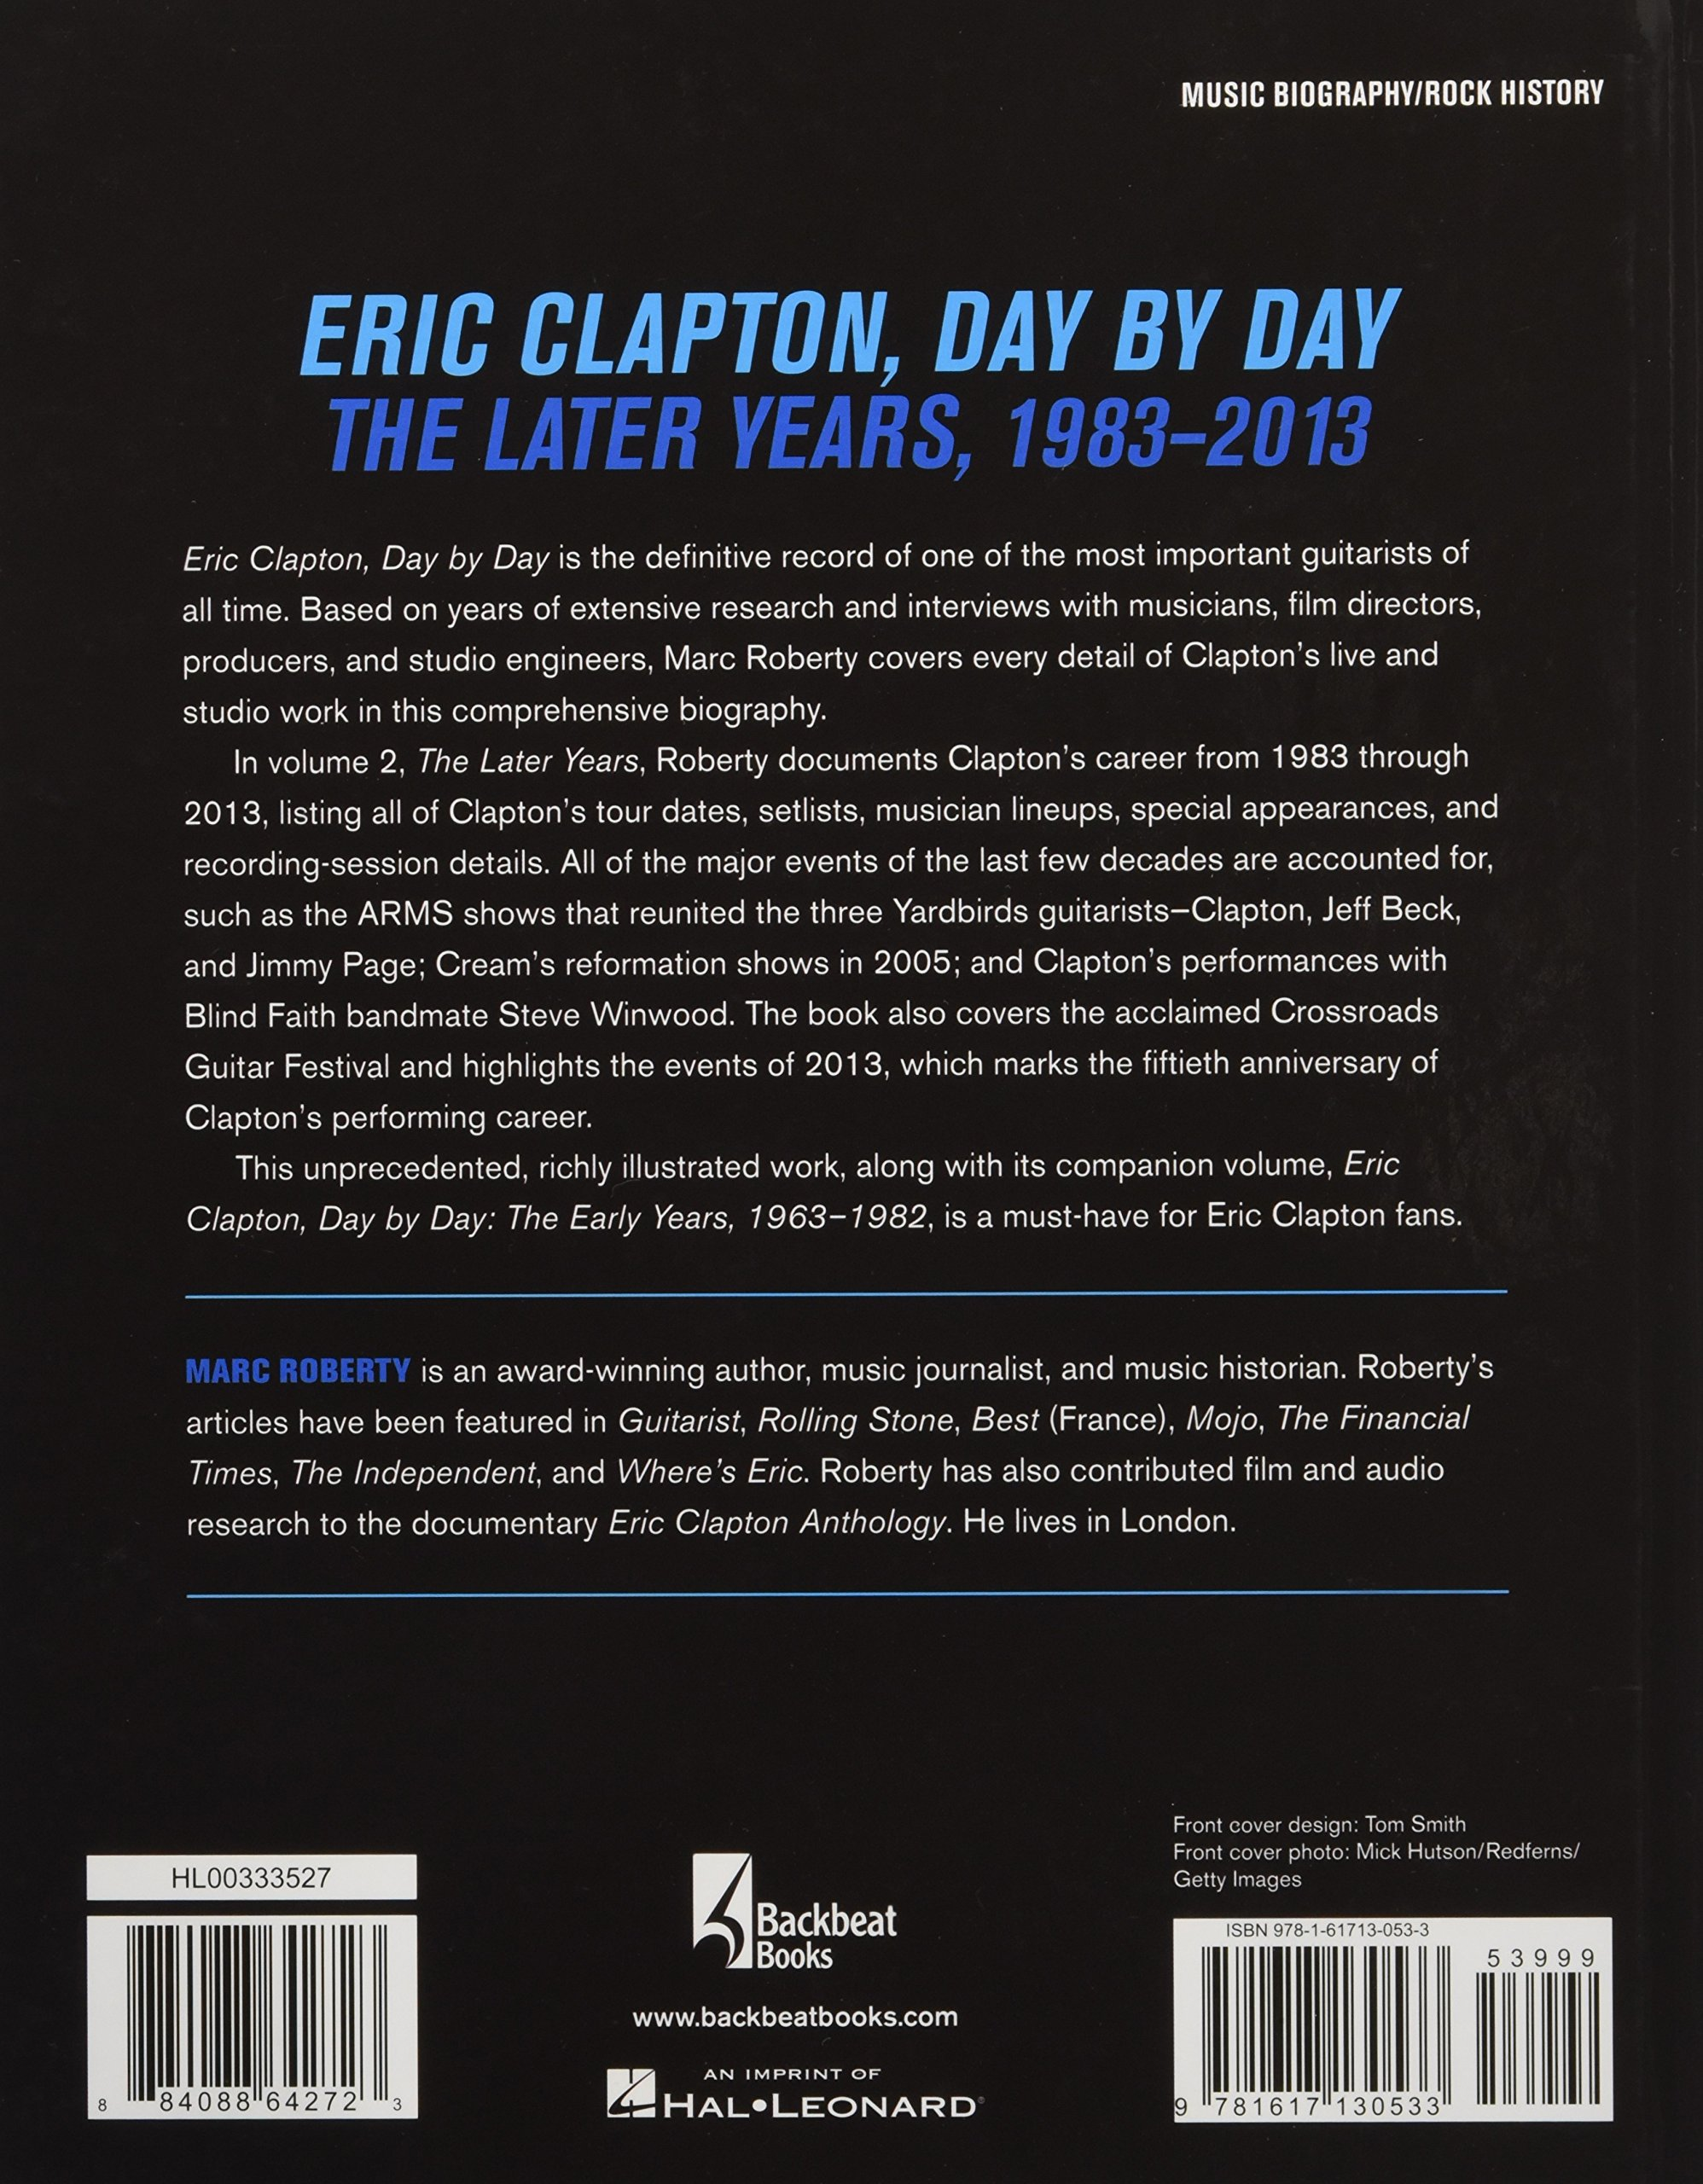 Eric Clapton, Day by Day: The Later Years, 1983-2013 by Brand: Backbeat Books